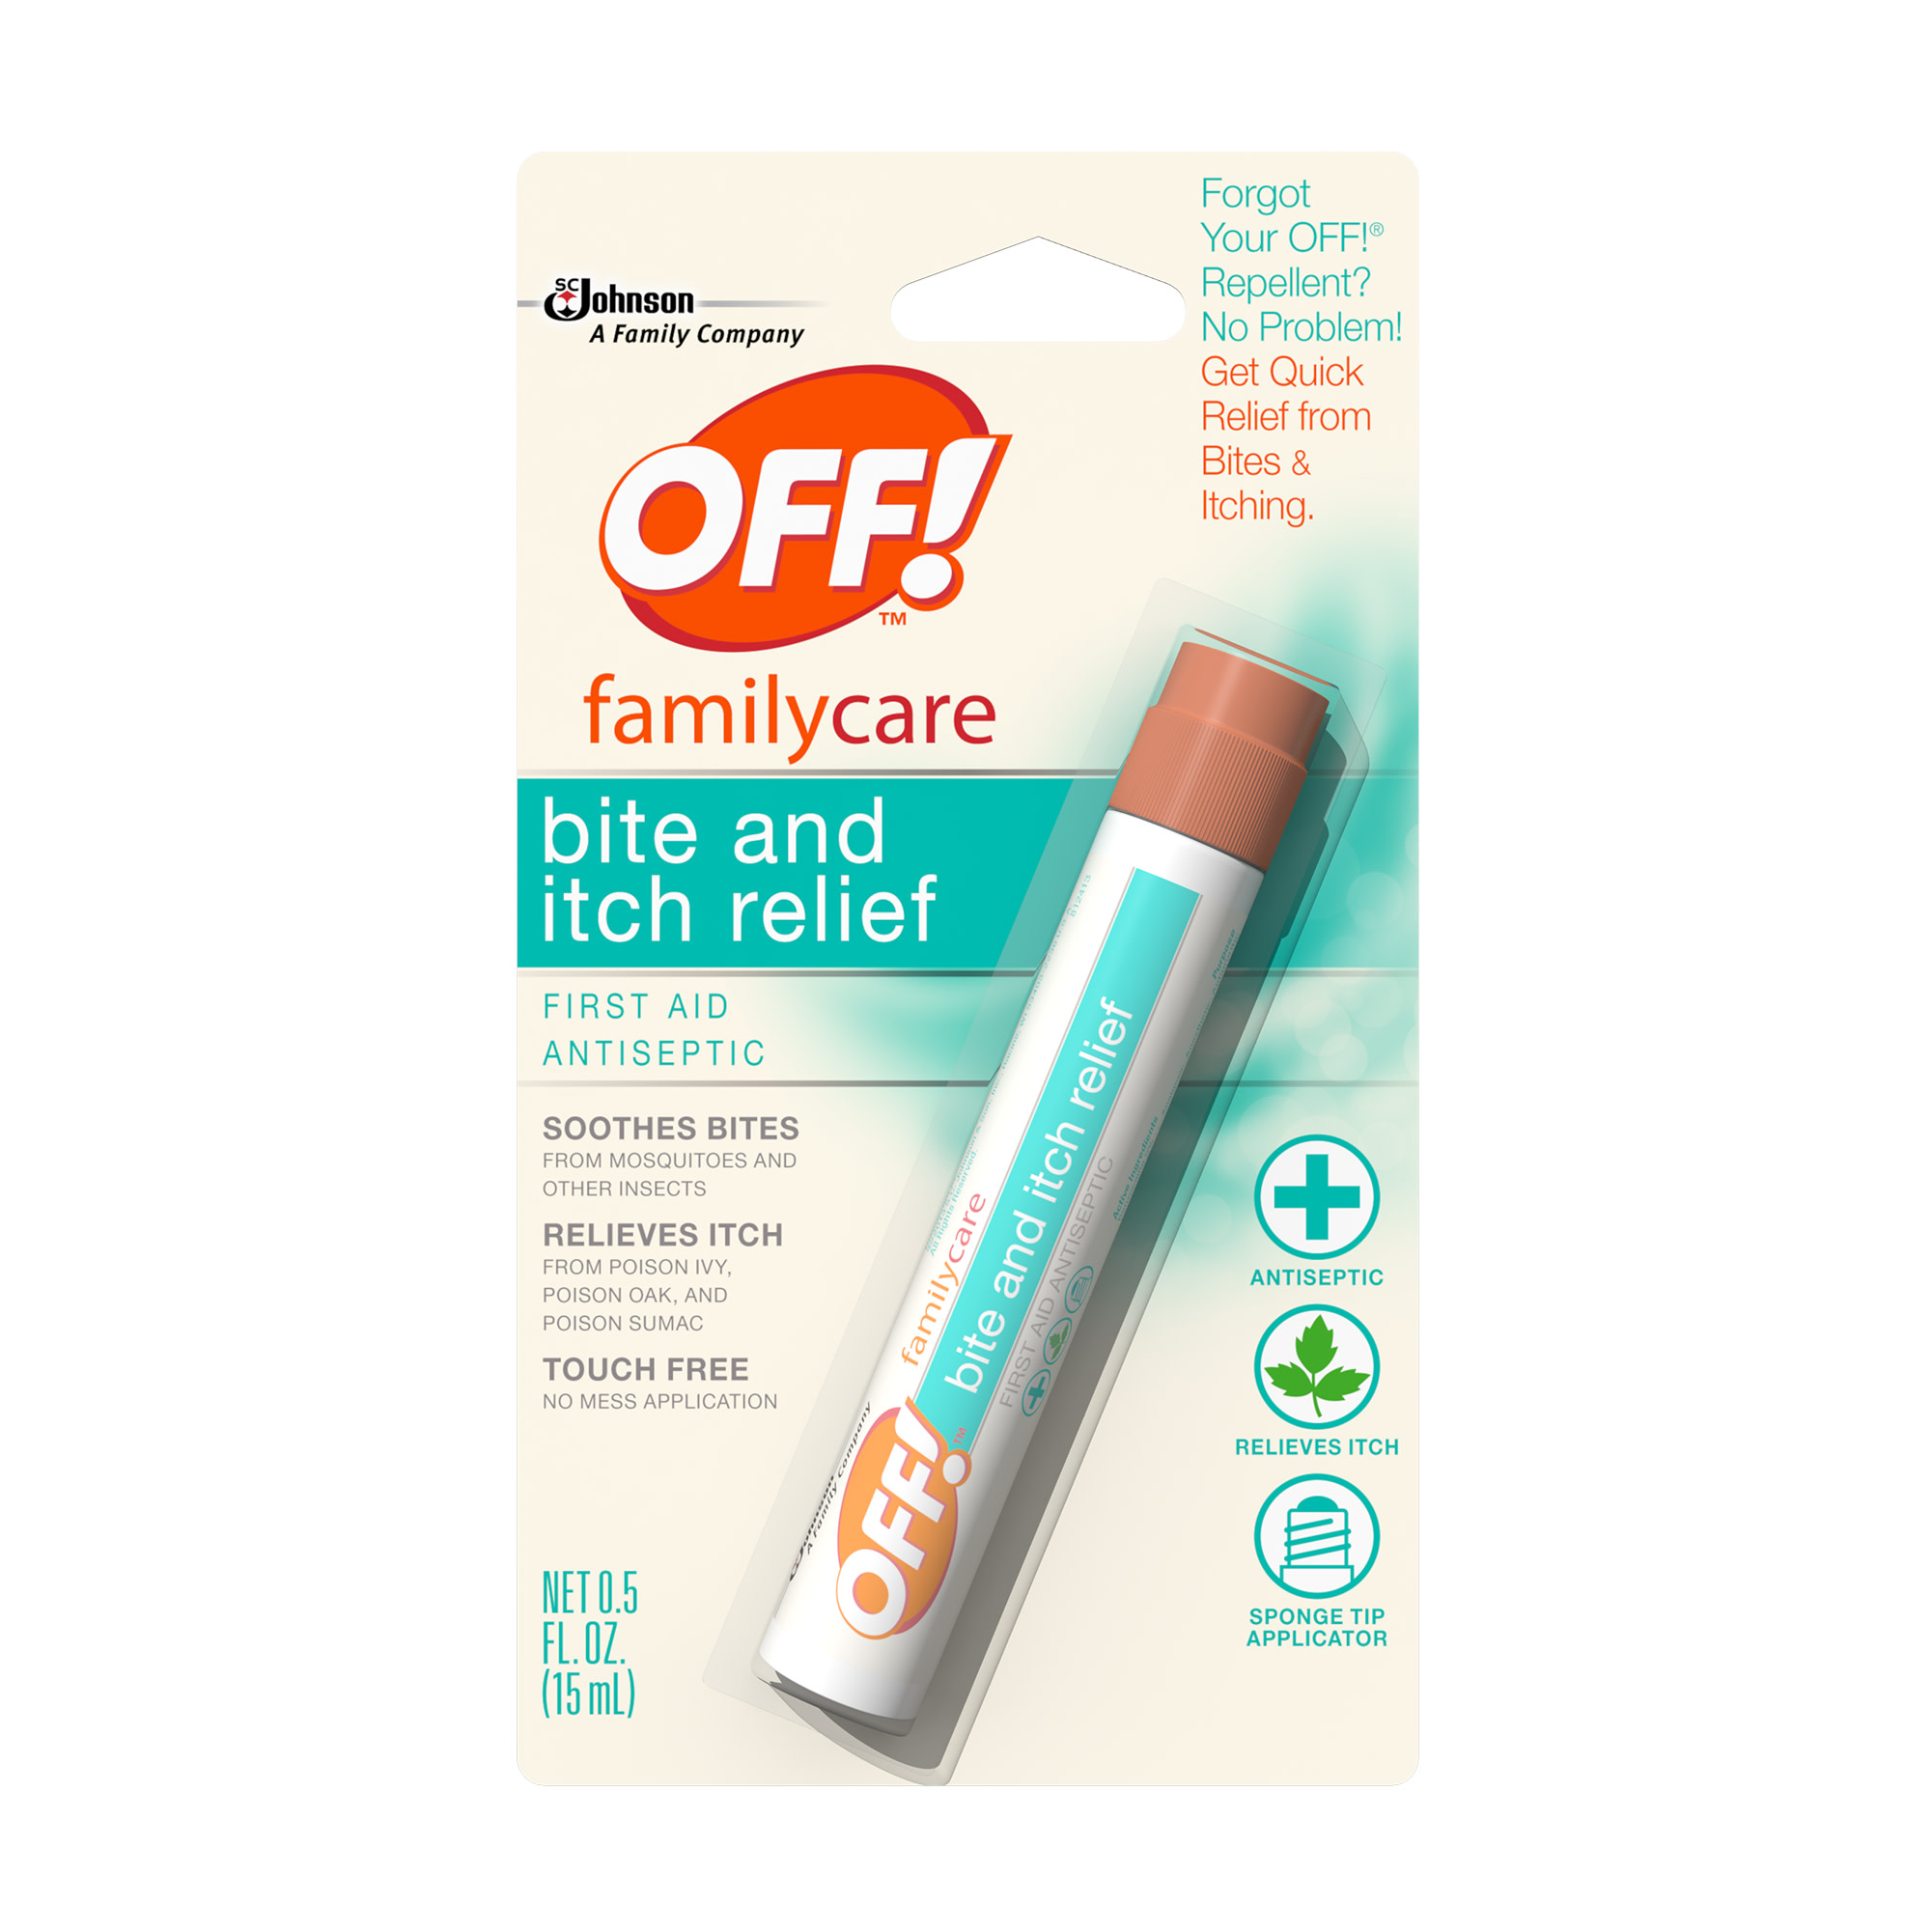 OFF! FamilyCare Bite and Itch Relief Pen, 1 count